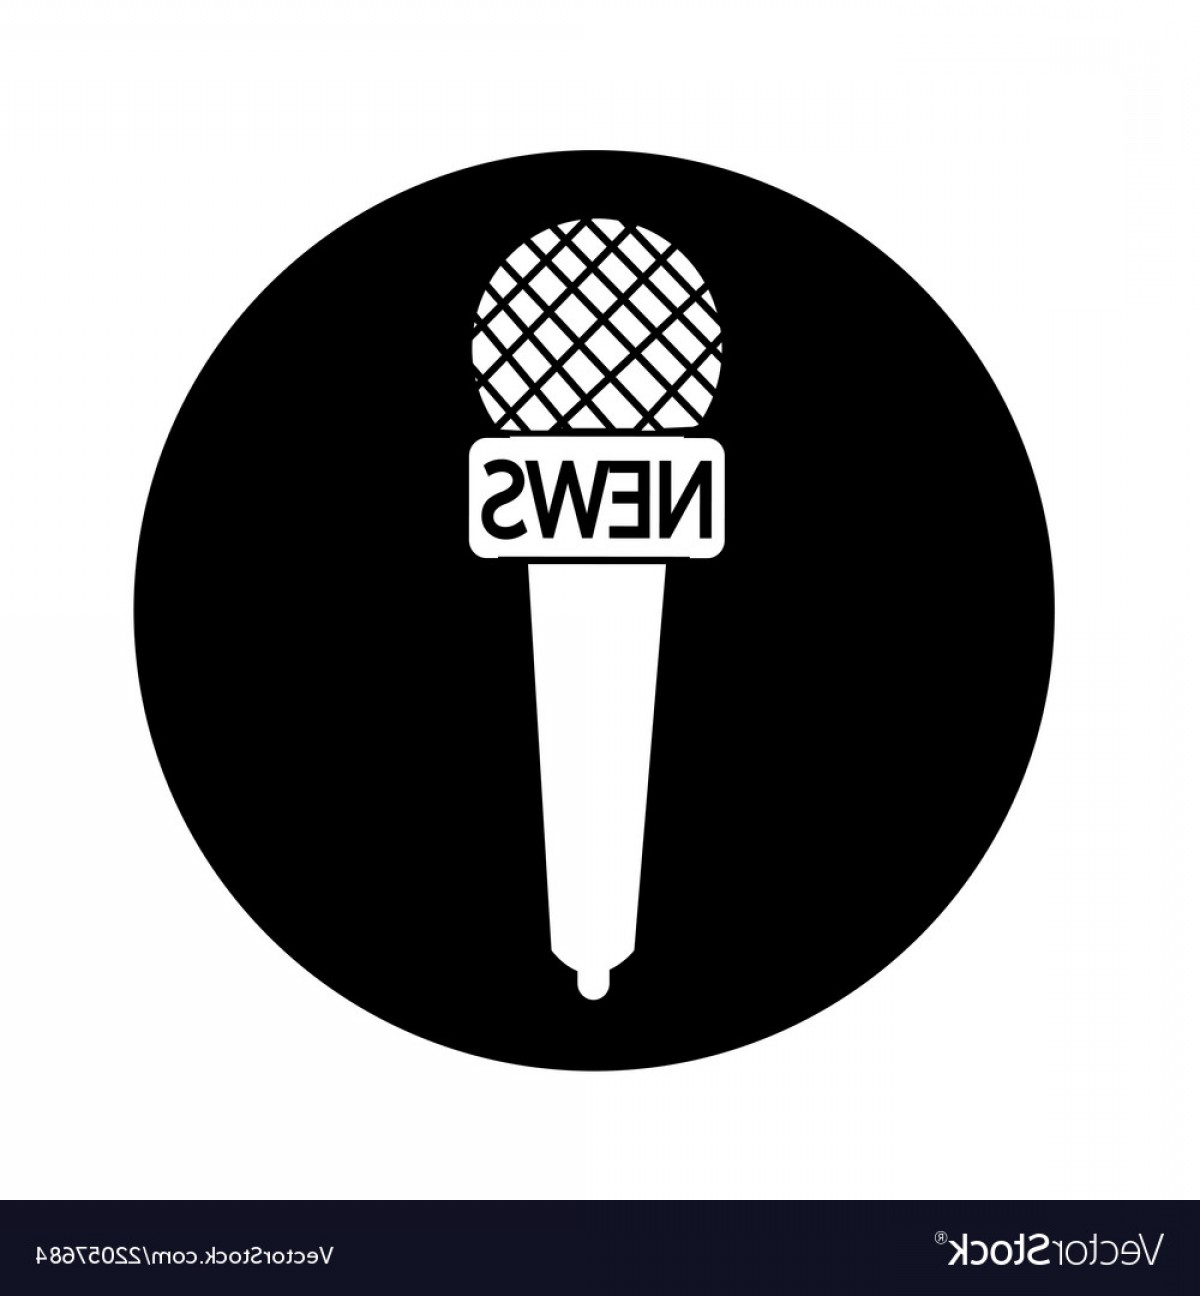 News Microphone Icon Vector: News Microphone Icon Design Vector